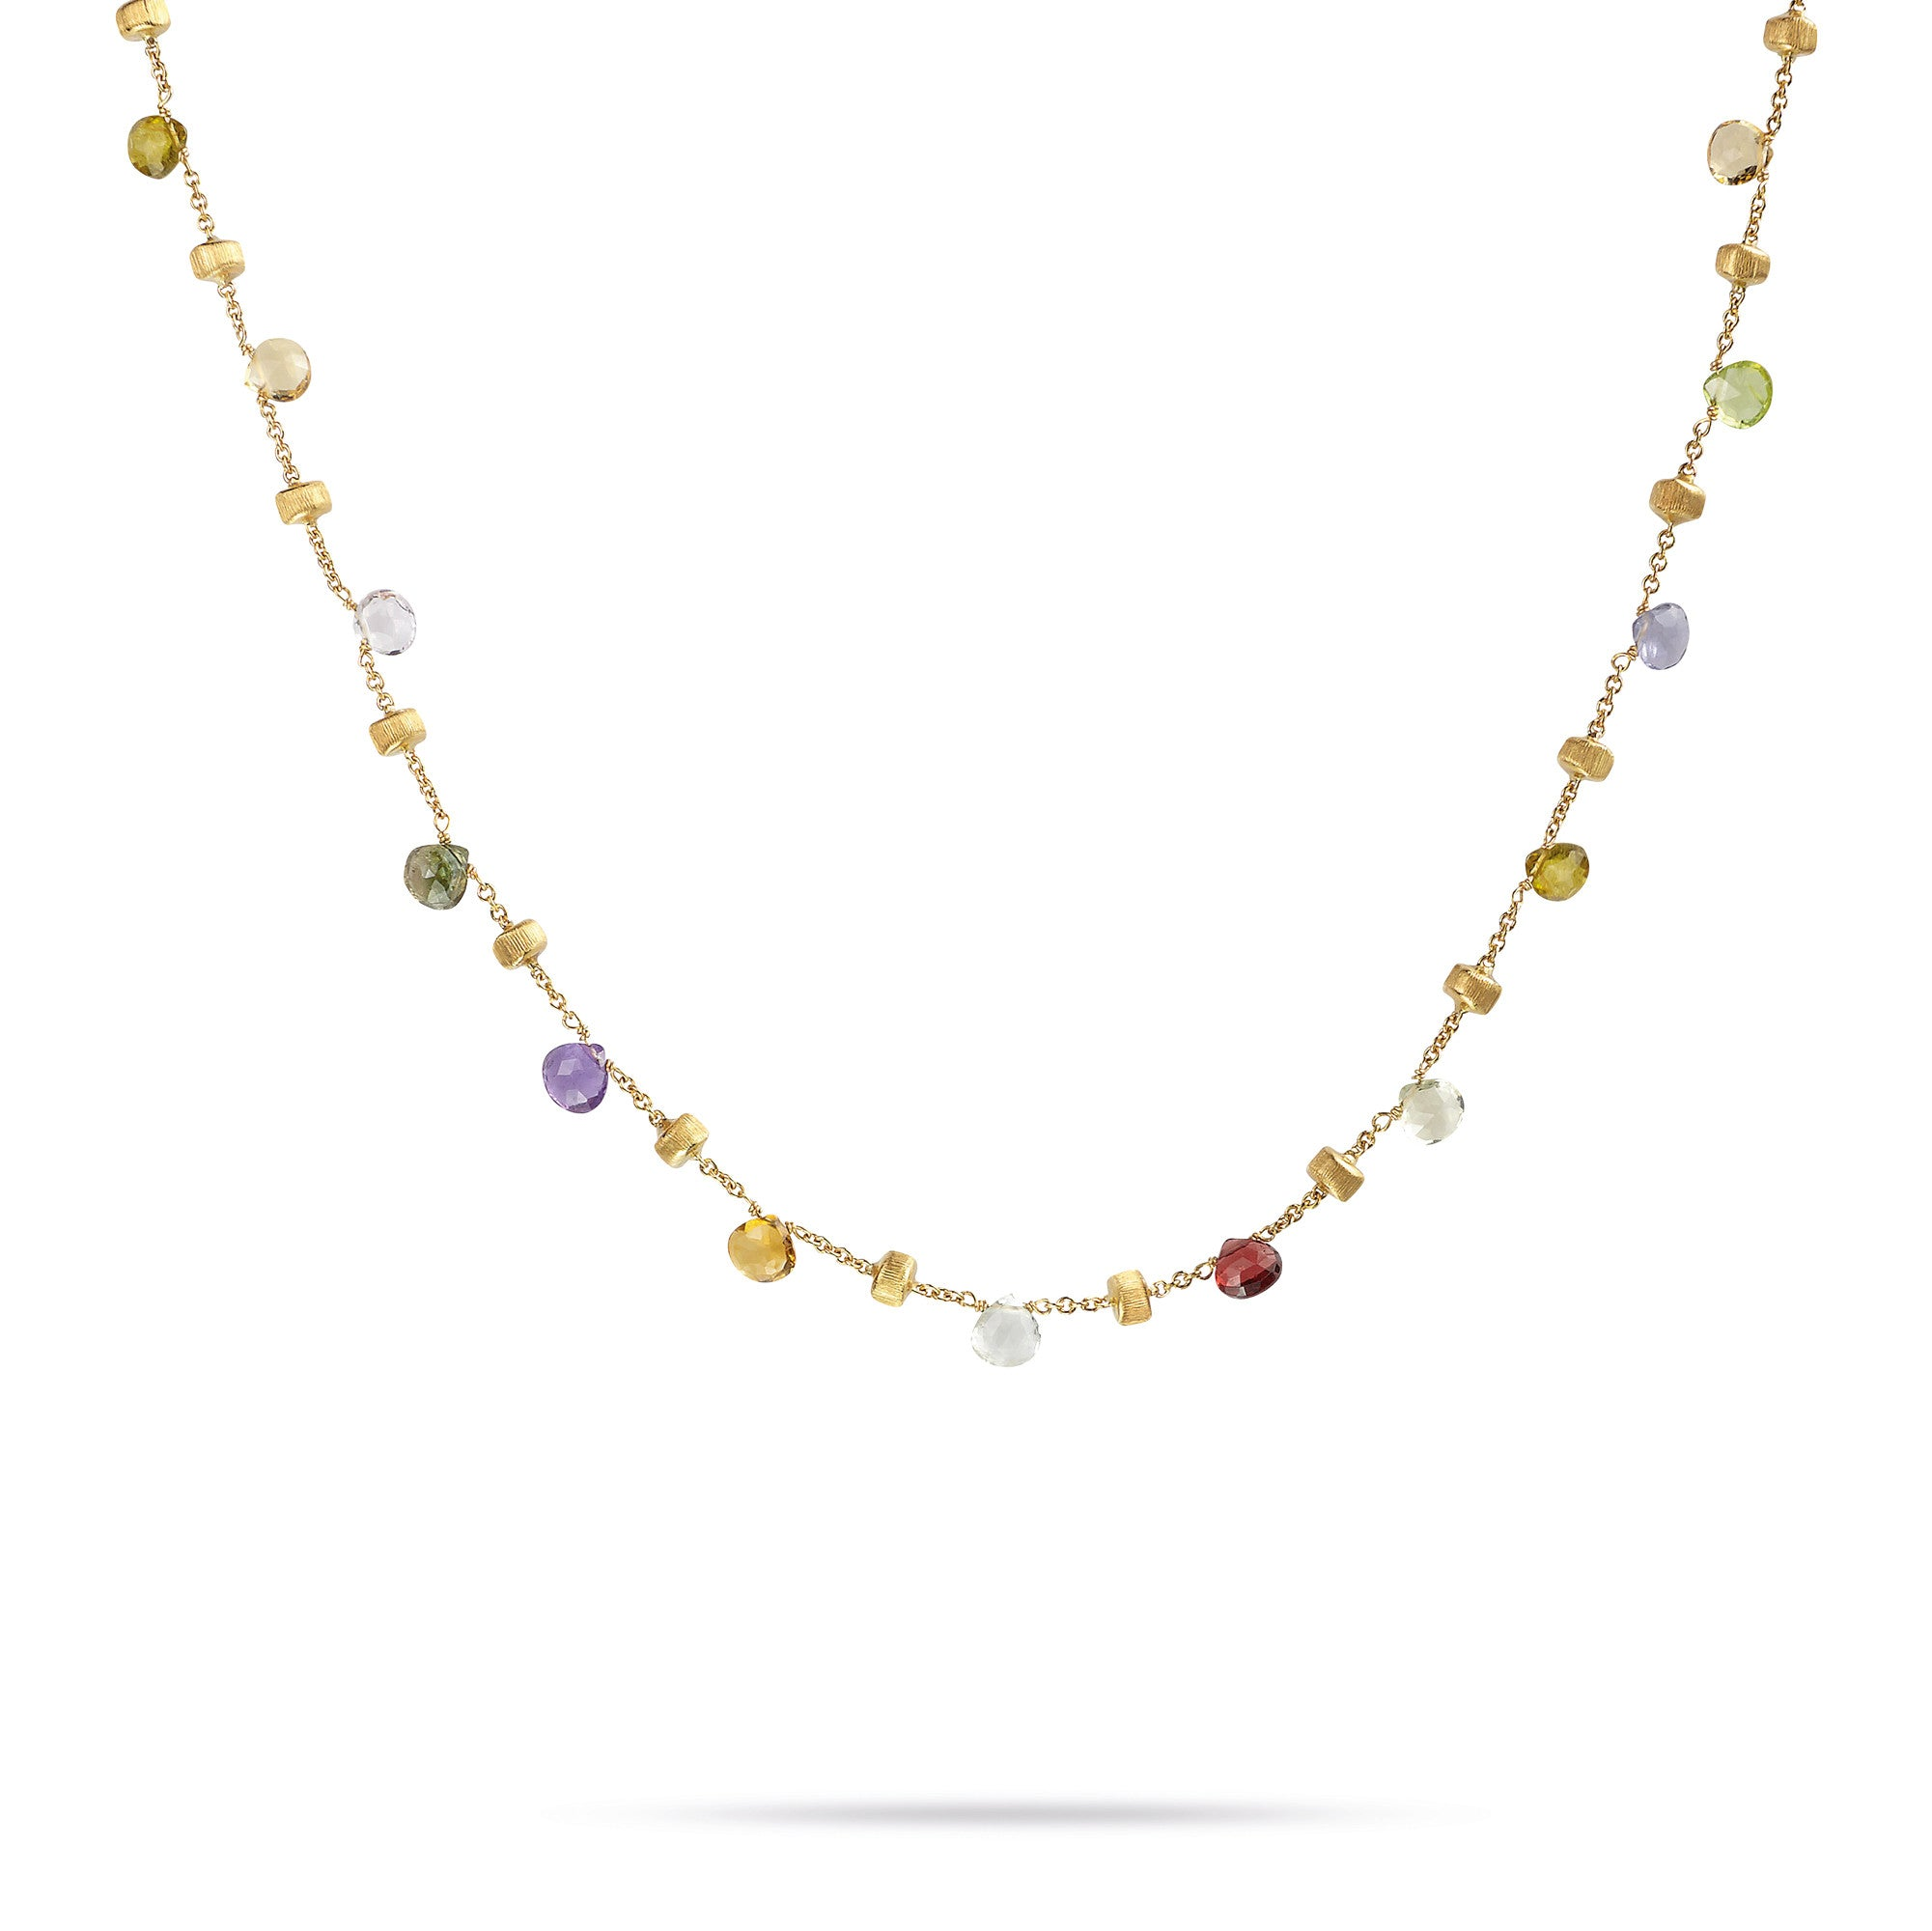 18K Yellow Gold & Mixed Stone Short Necklace